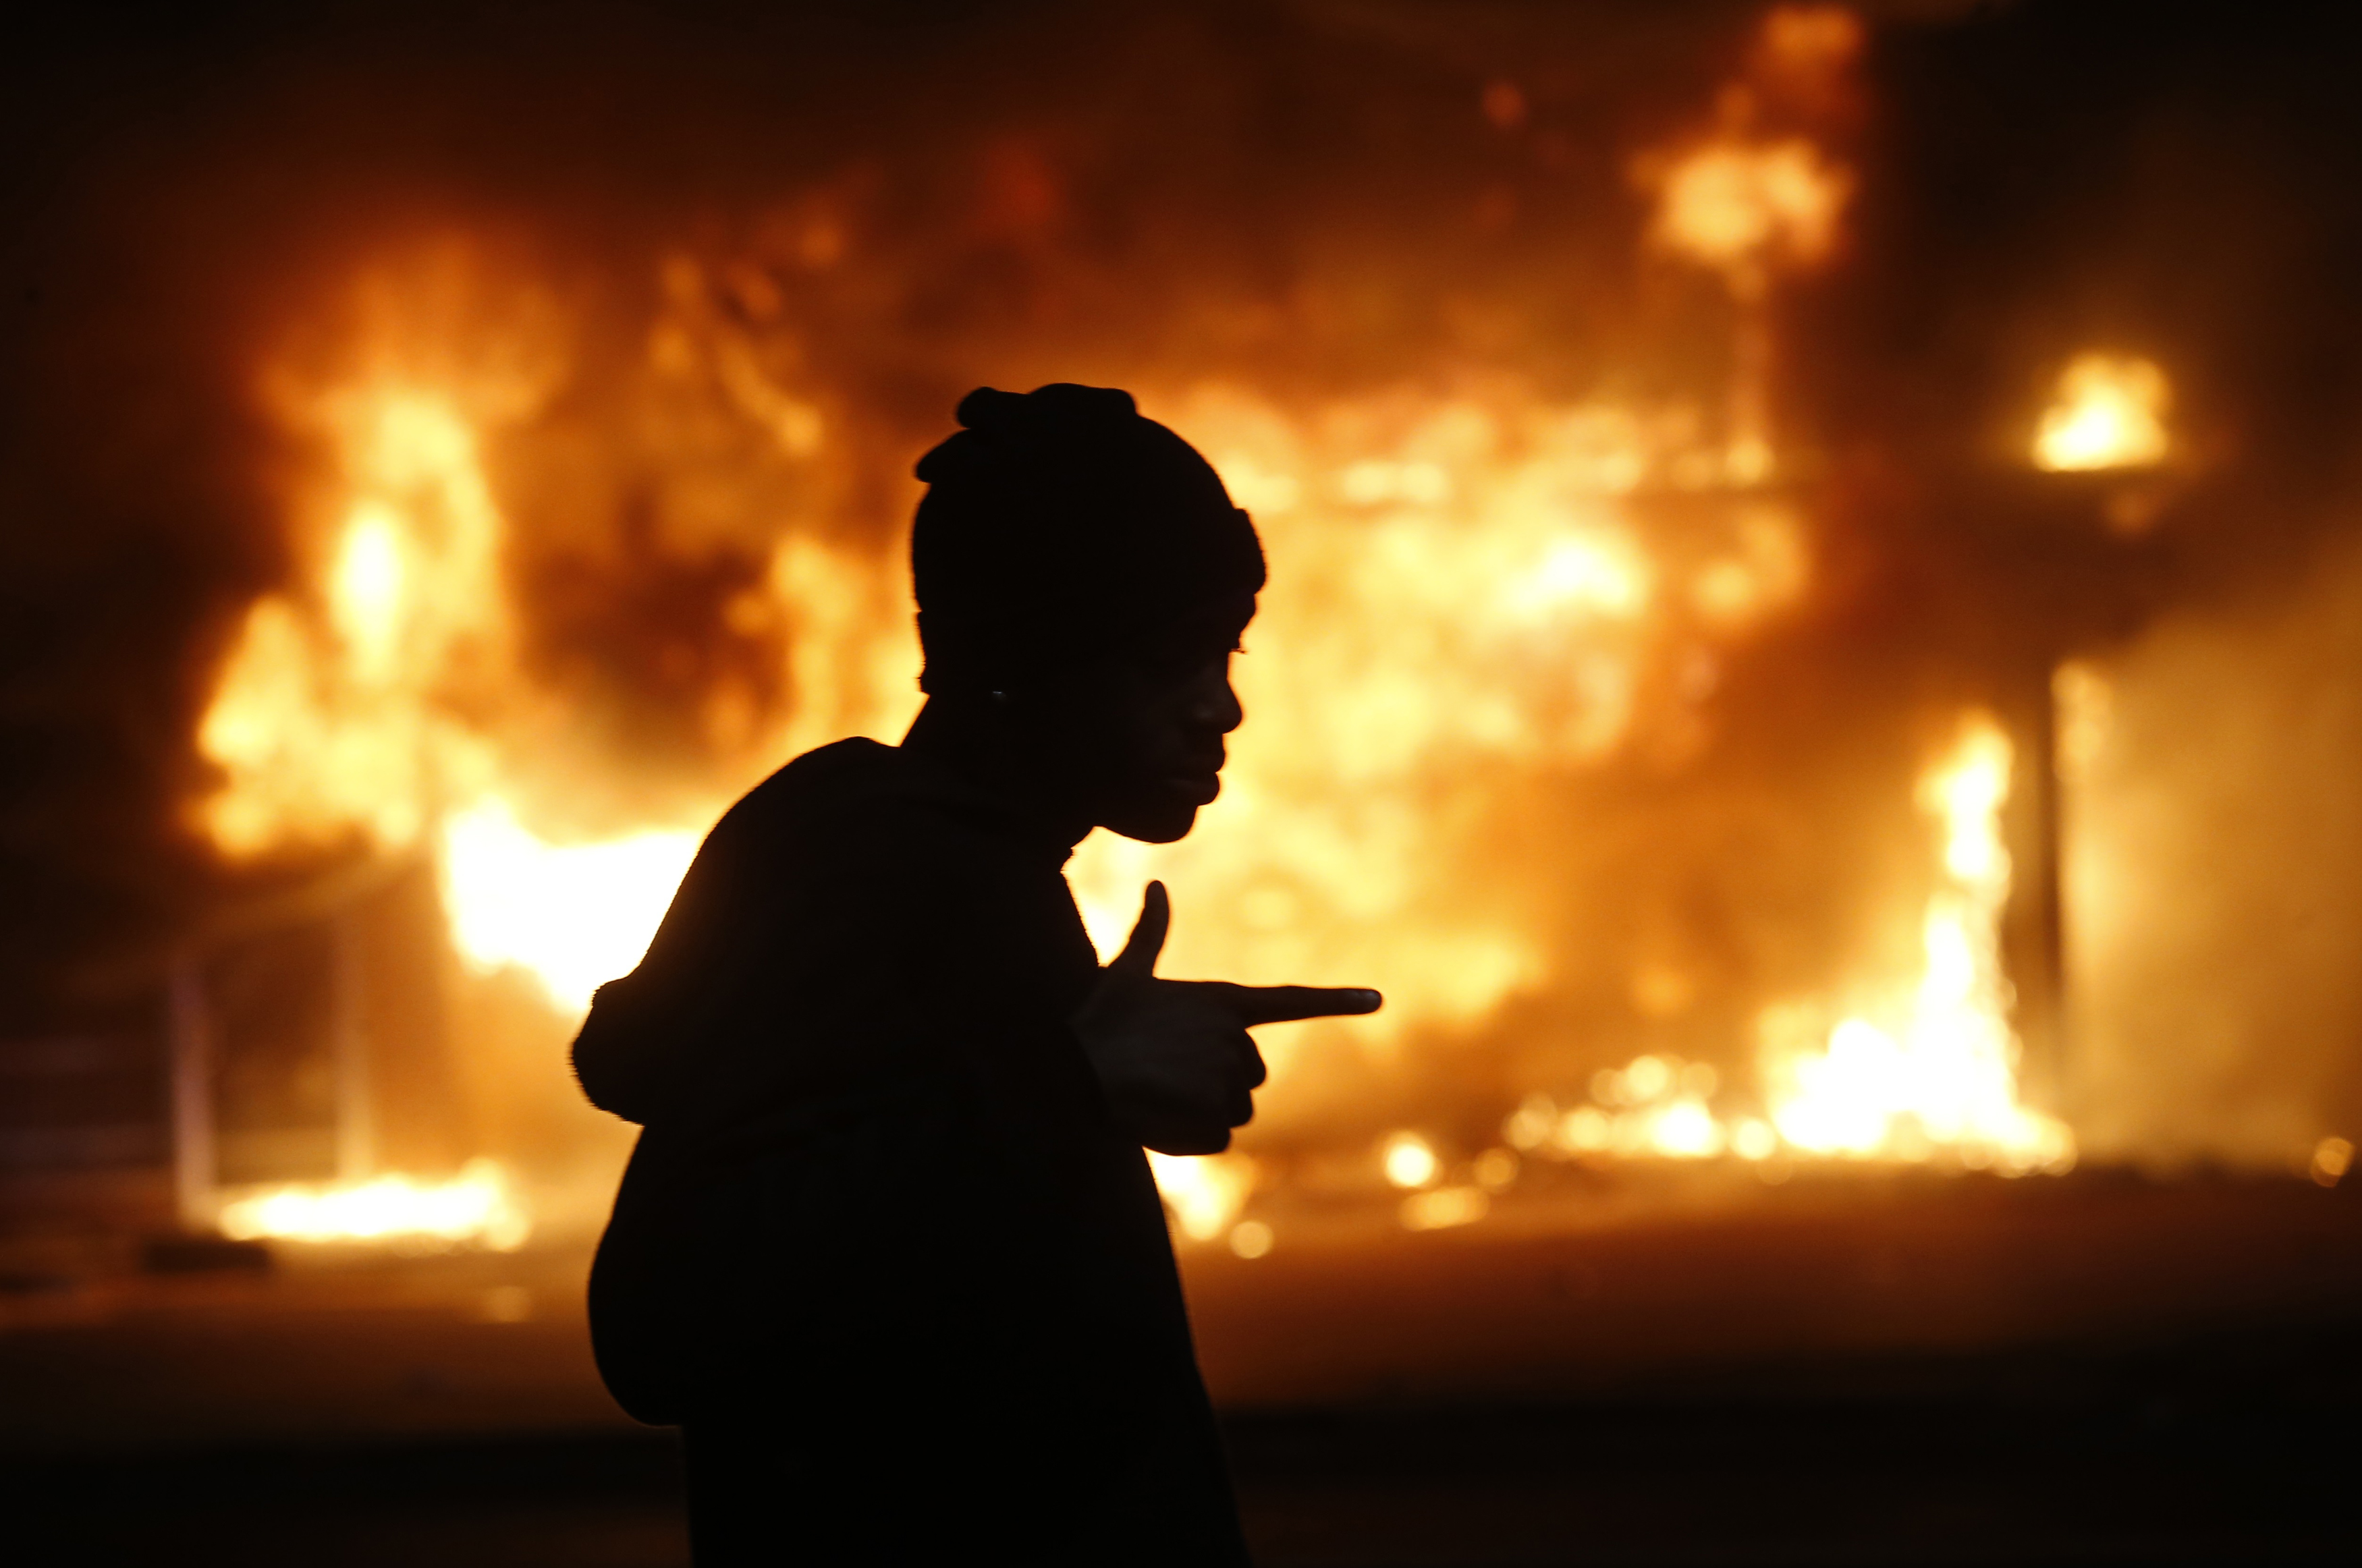 A man walks past a burning building during rioting after a grand jury returned no indictment in the shooting of Michael Brown in Ferguson, Missouri November 24, 2014.